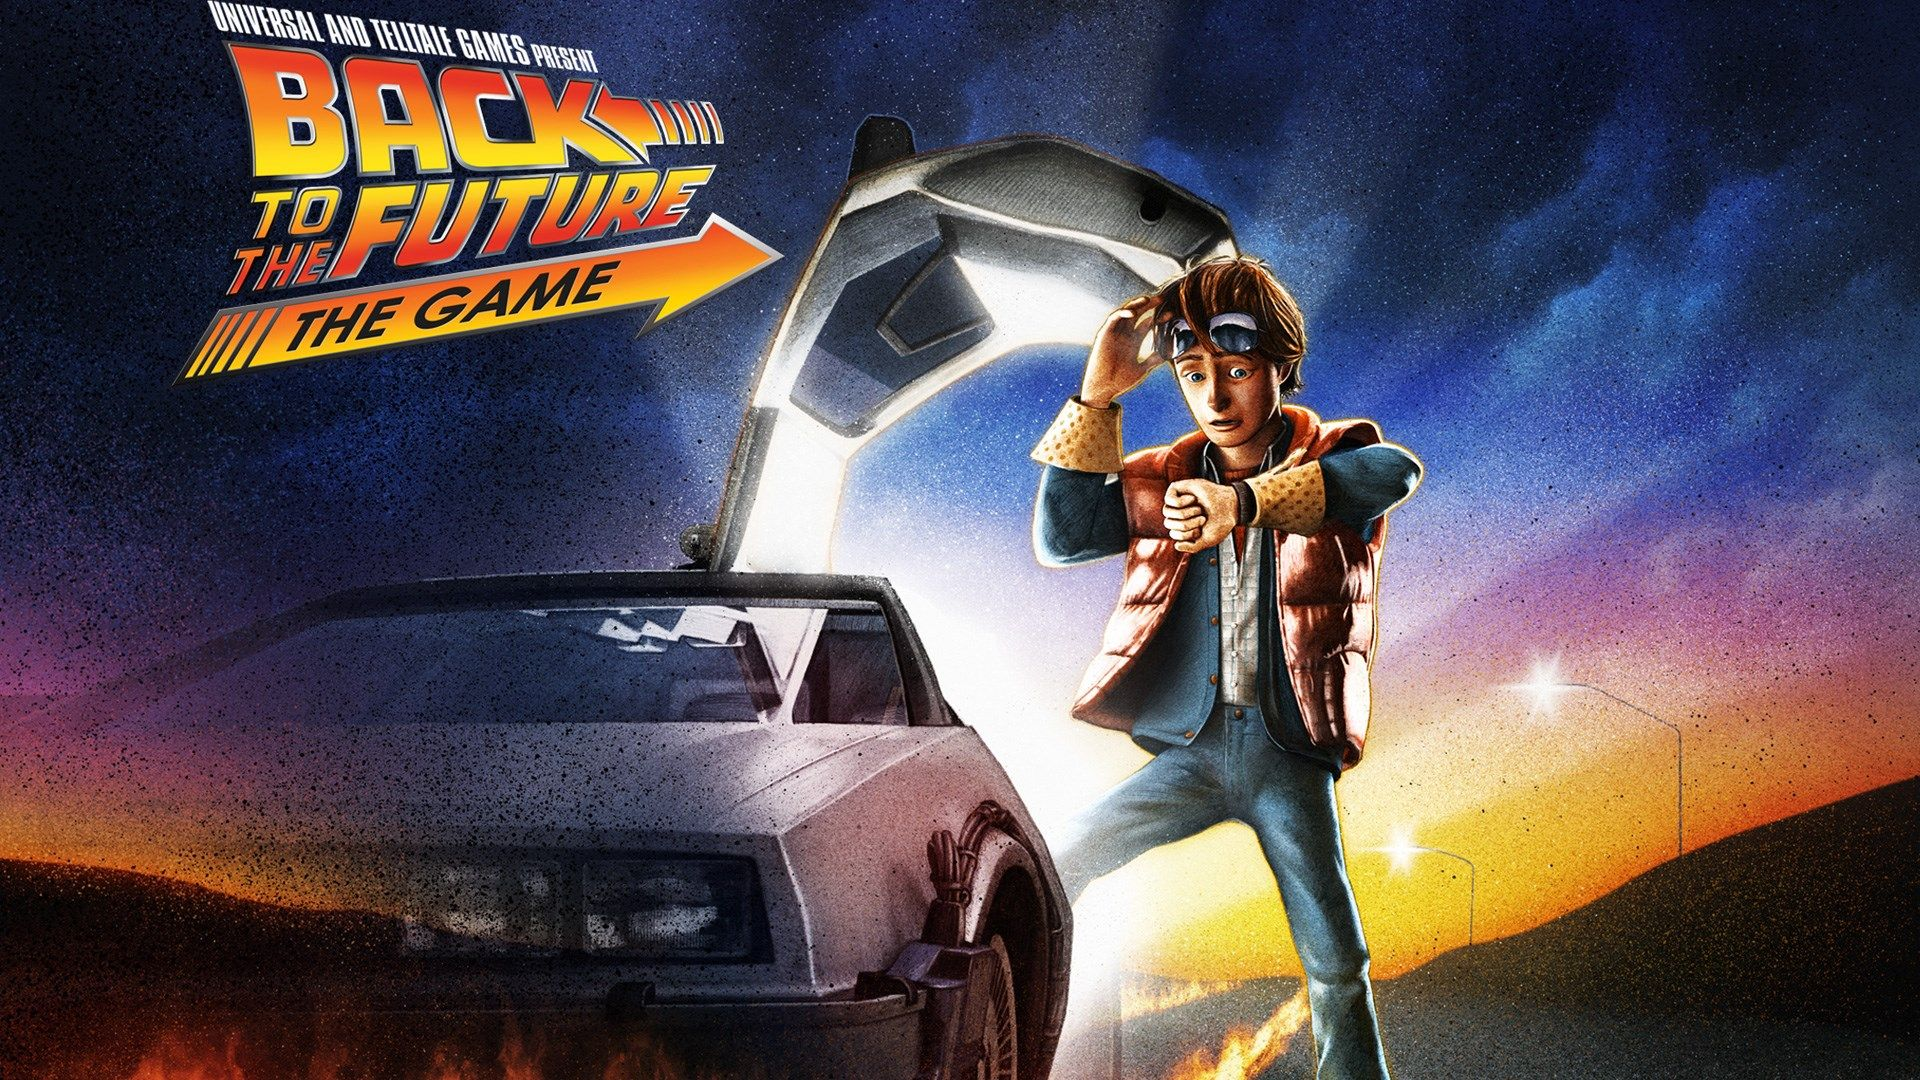 1920x1080 Desktop Wallpaper For Back To The Future The Game Jpg